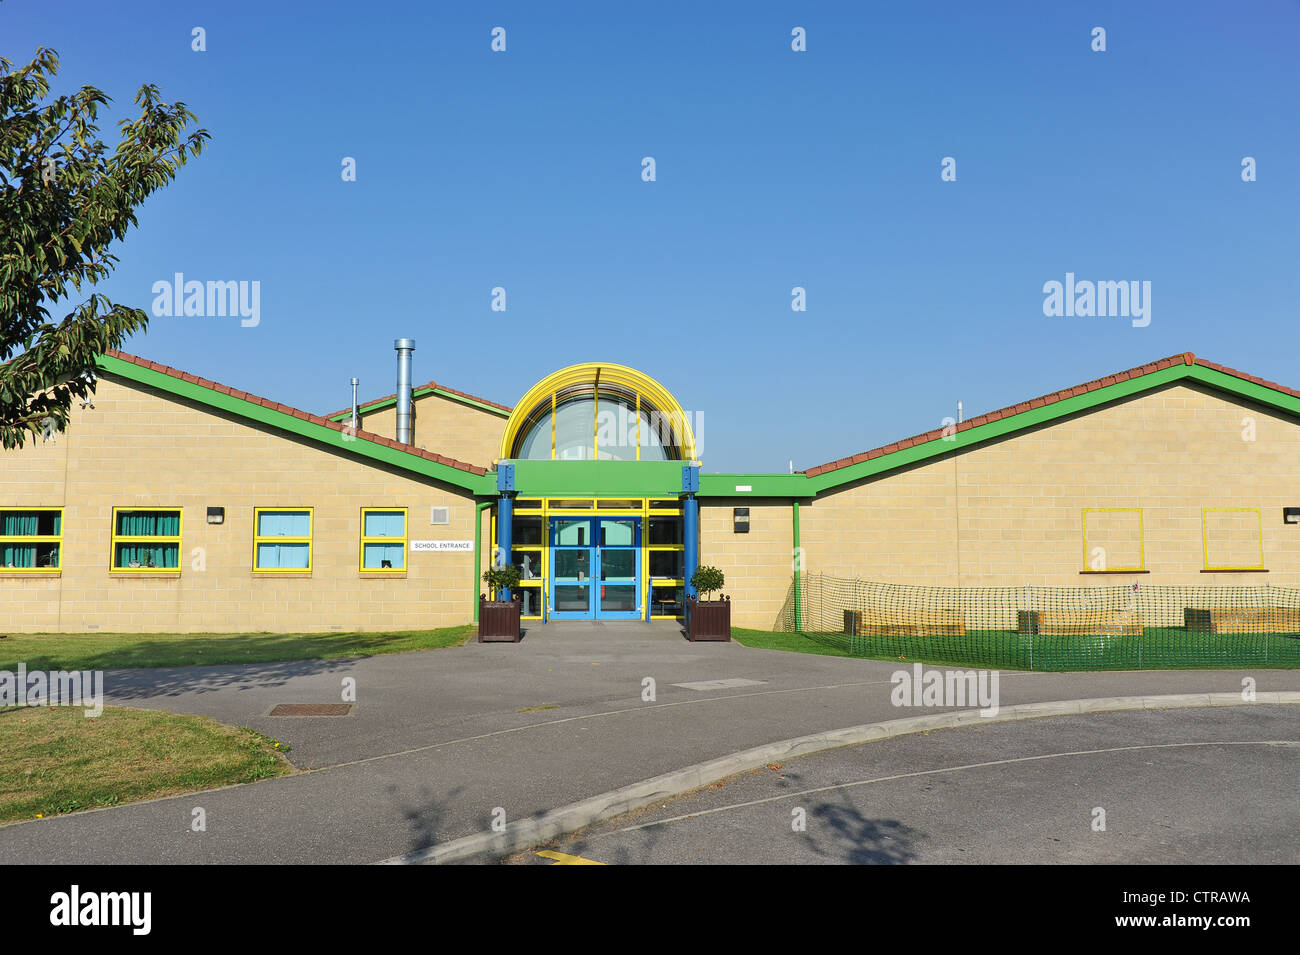 Modern UK Primary School building and entrance area. - Stock Image